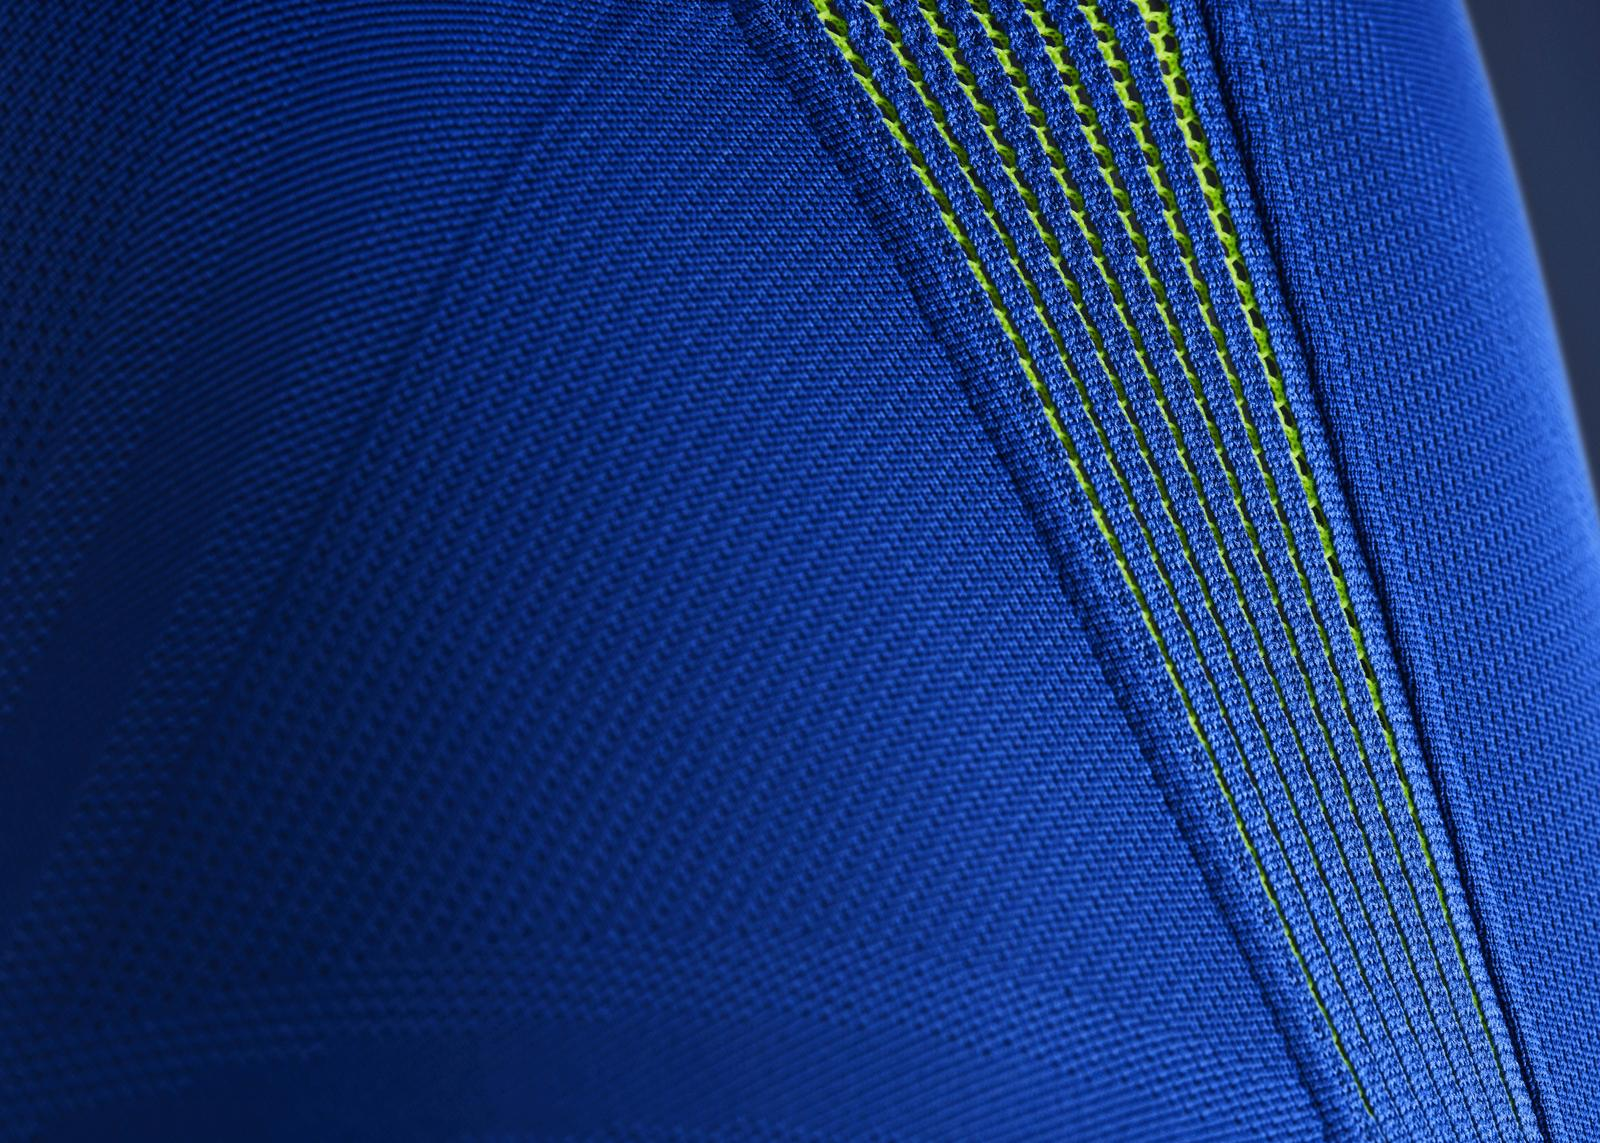 Ntk brasil away side seam detail rectangle 1600